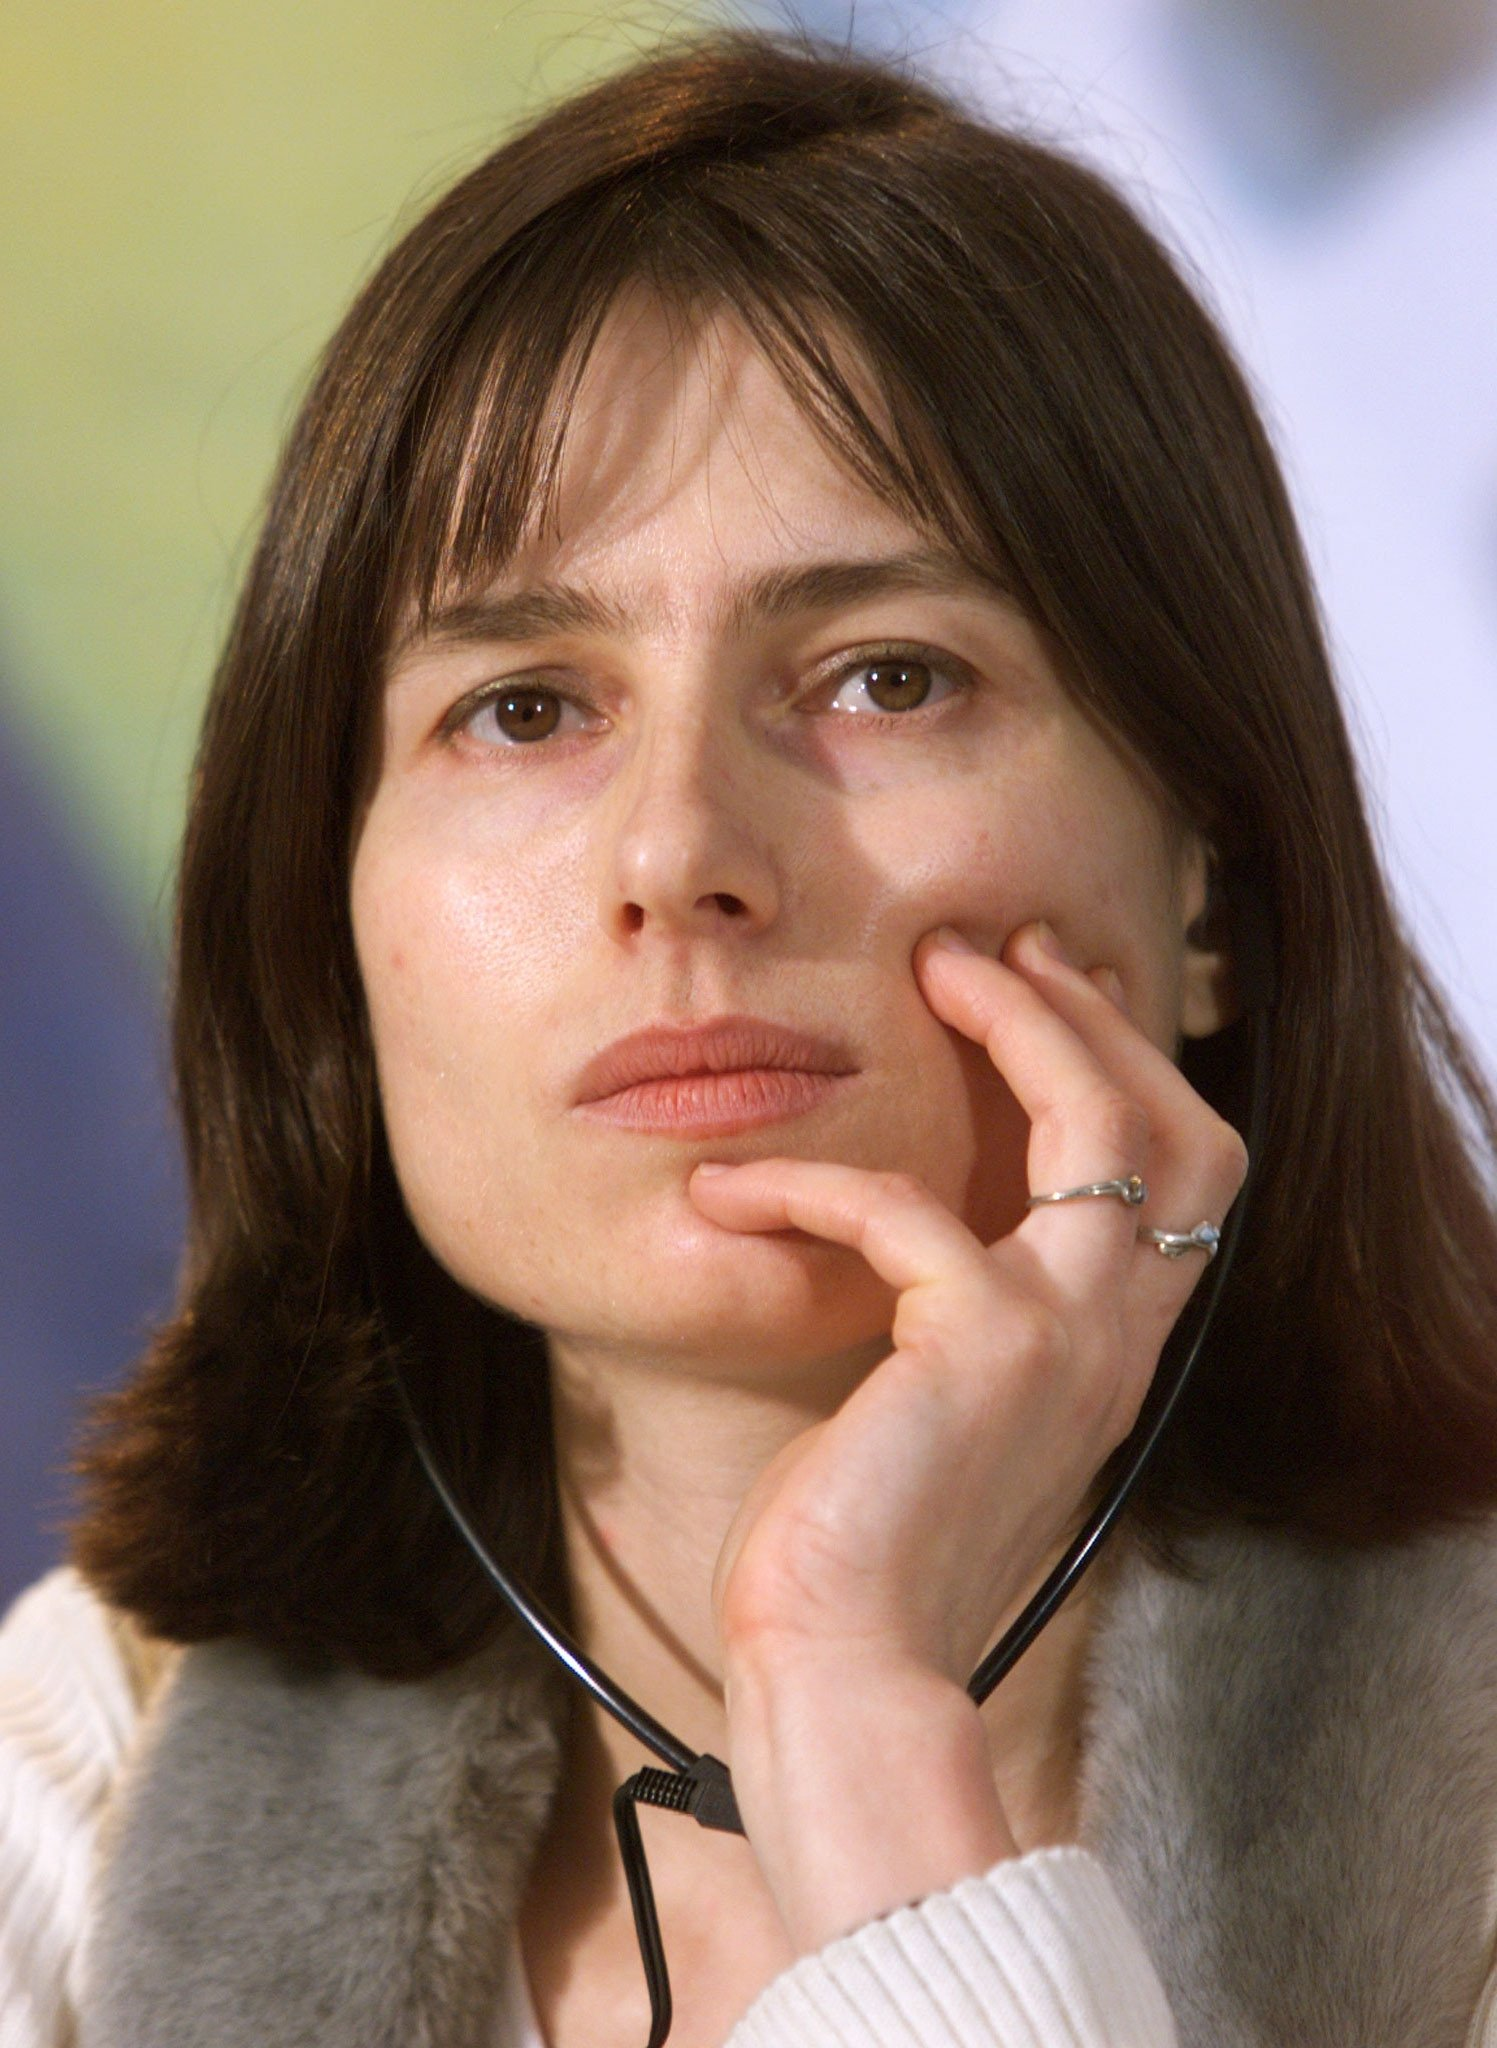 Turkish film director Yeşim Ustaoğlu listens to journalist's questions during a news conference after screening her film 'Güneşe Yolculuk' at the 49th annual Berlin Film Festival in Berlin February 15, 1999. (REUTERS Photo)